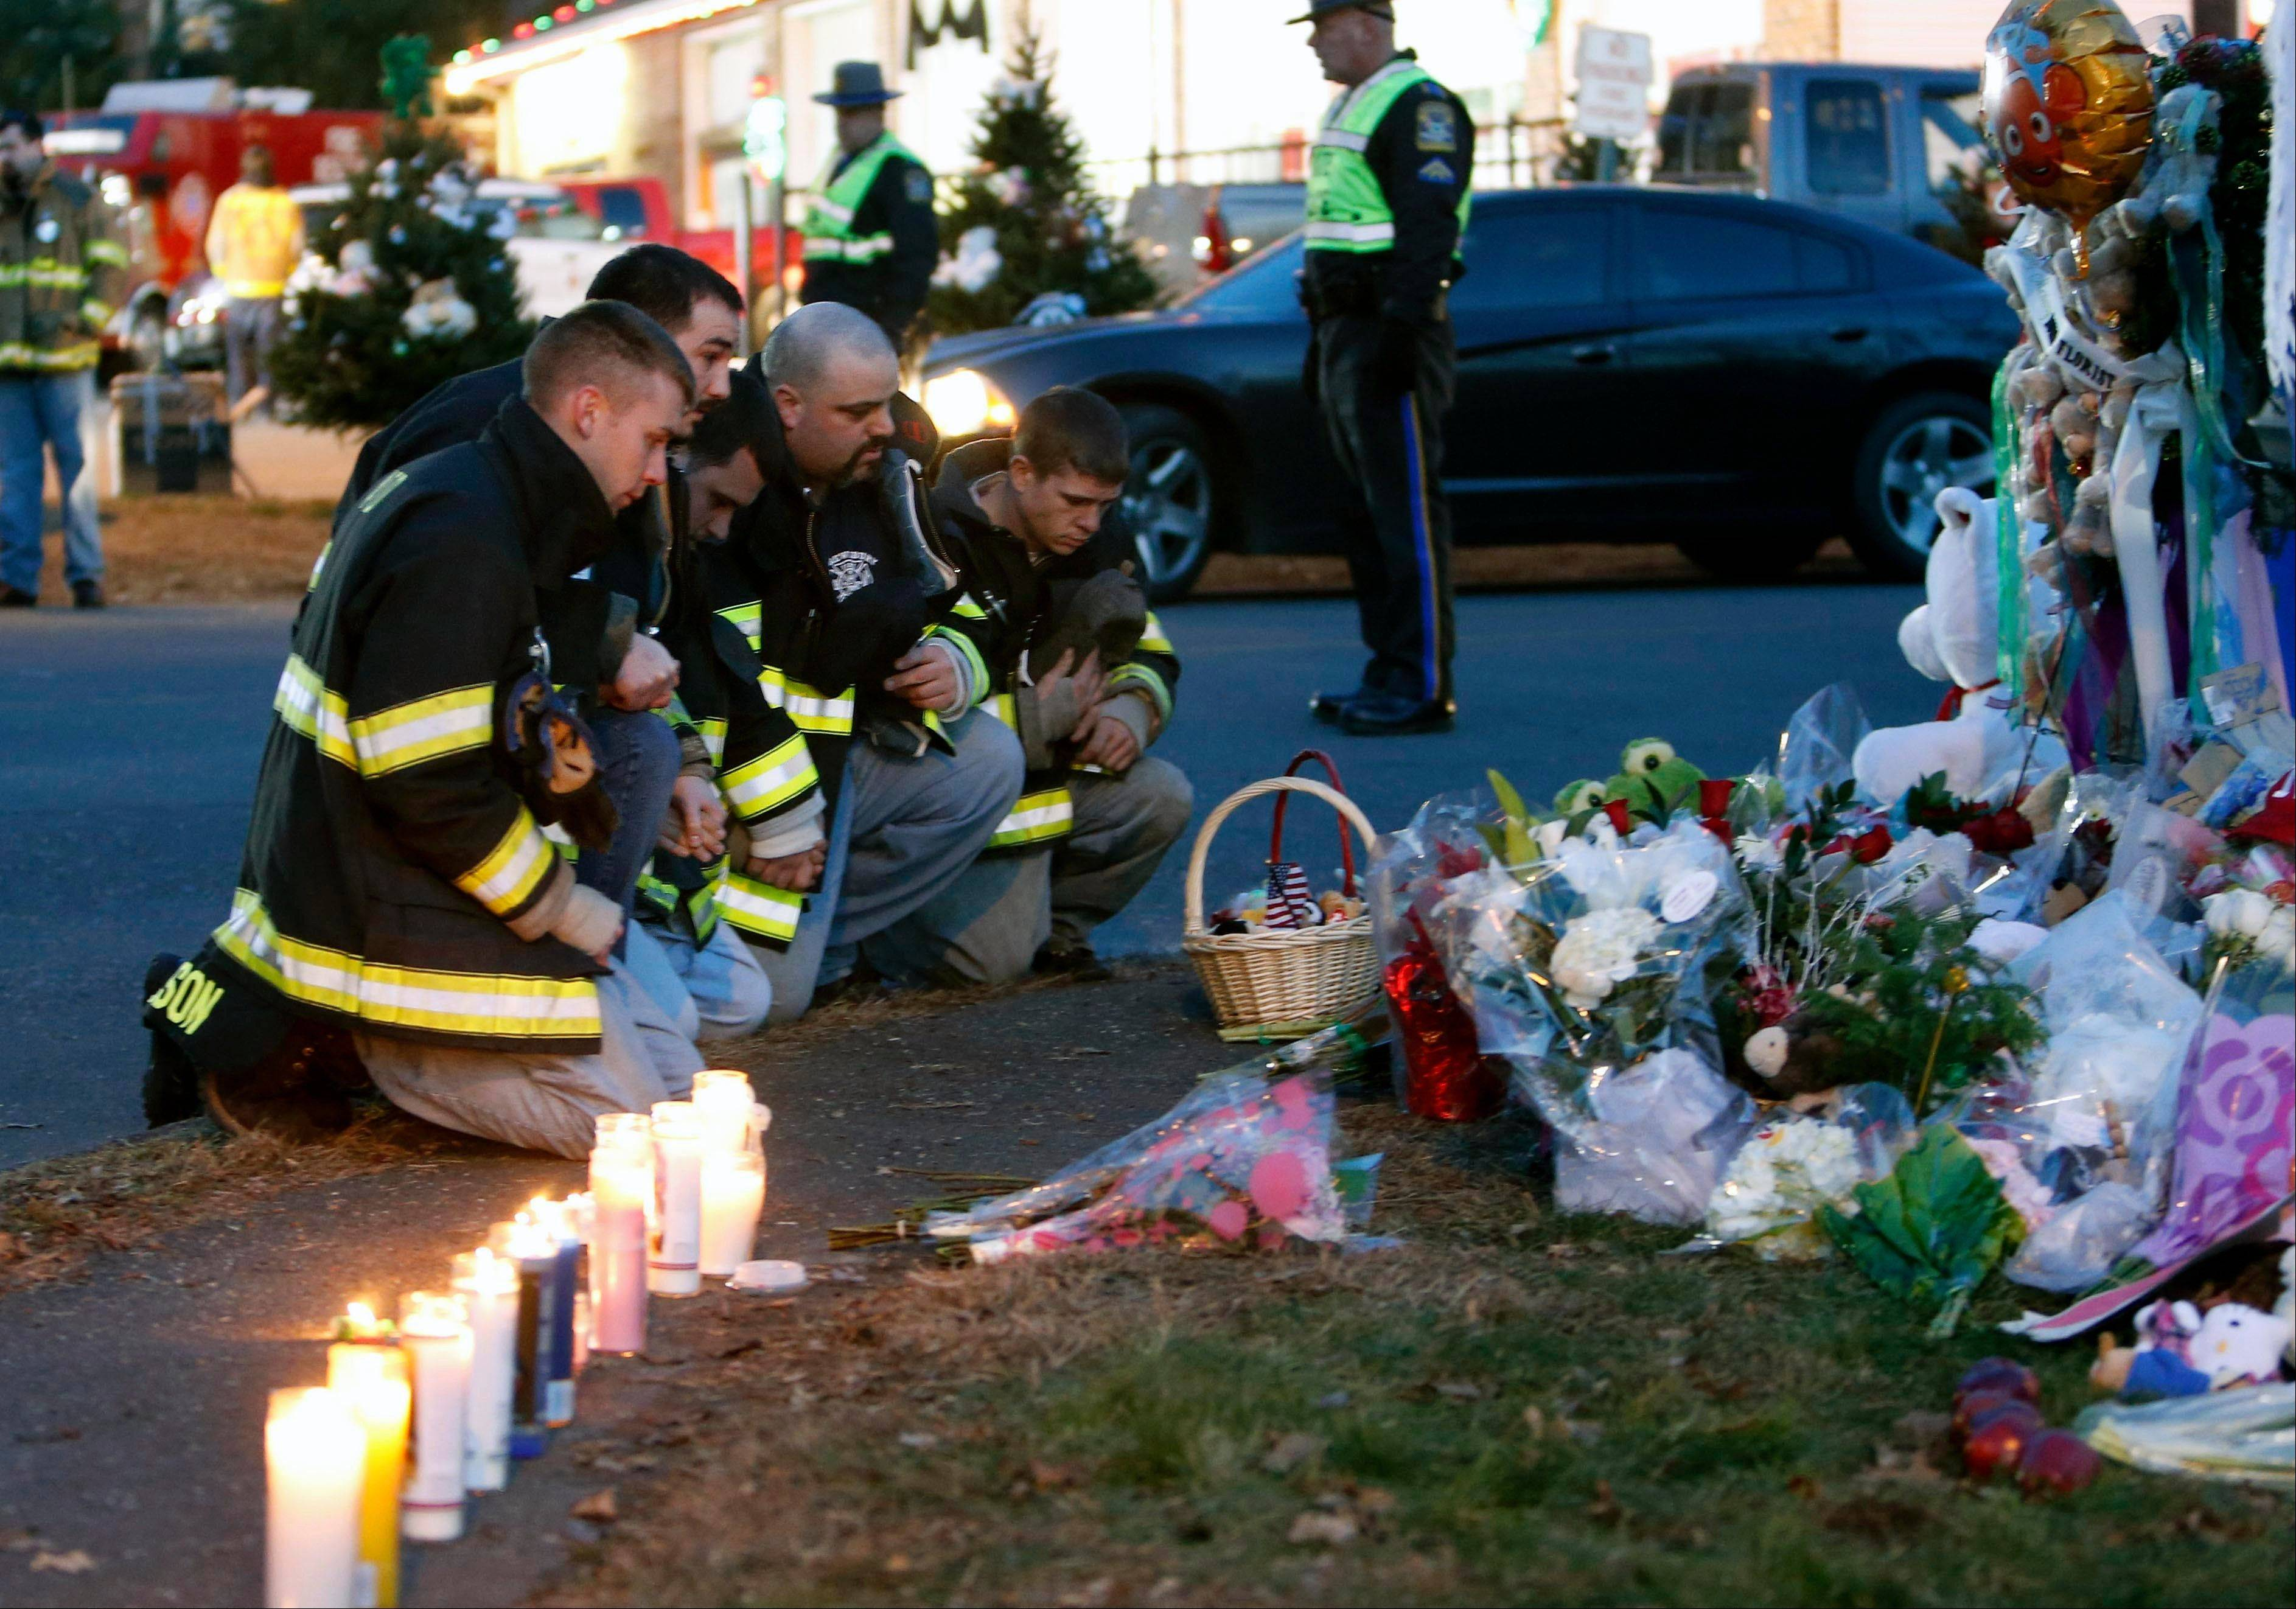 Firefighters pay their respects at a memorial for shooting victims near Sandy Hook Elementary School, Saturday.